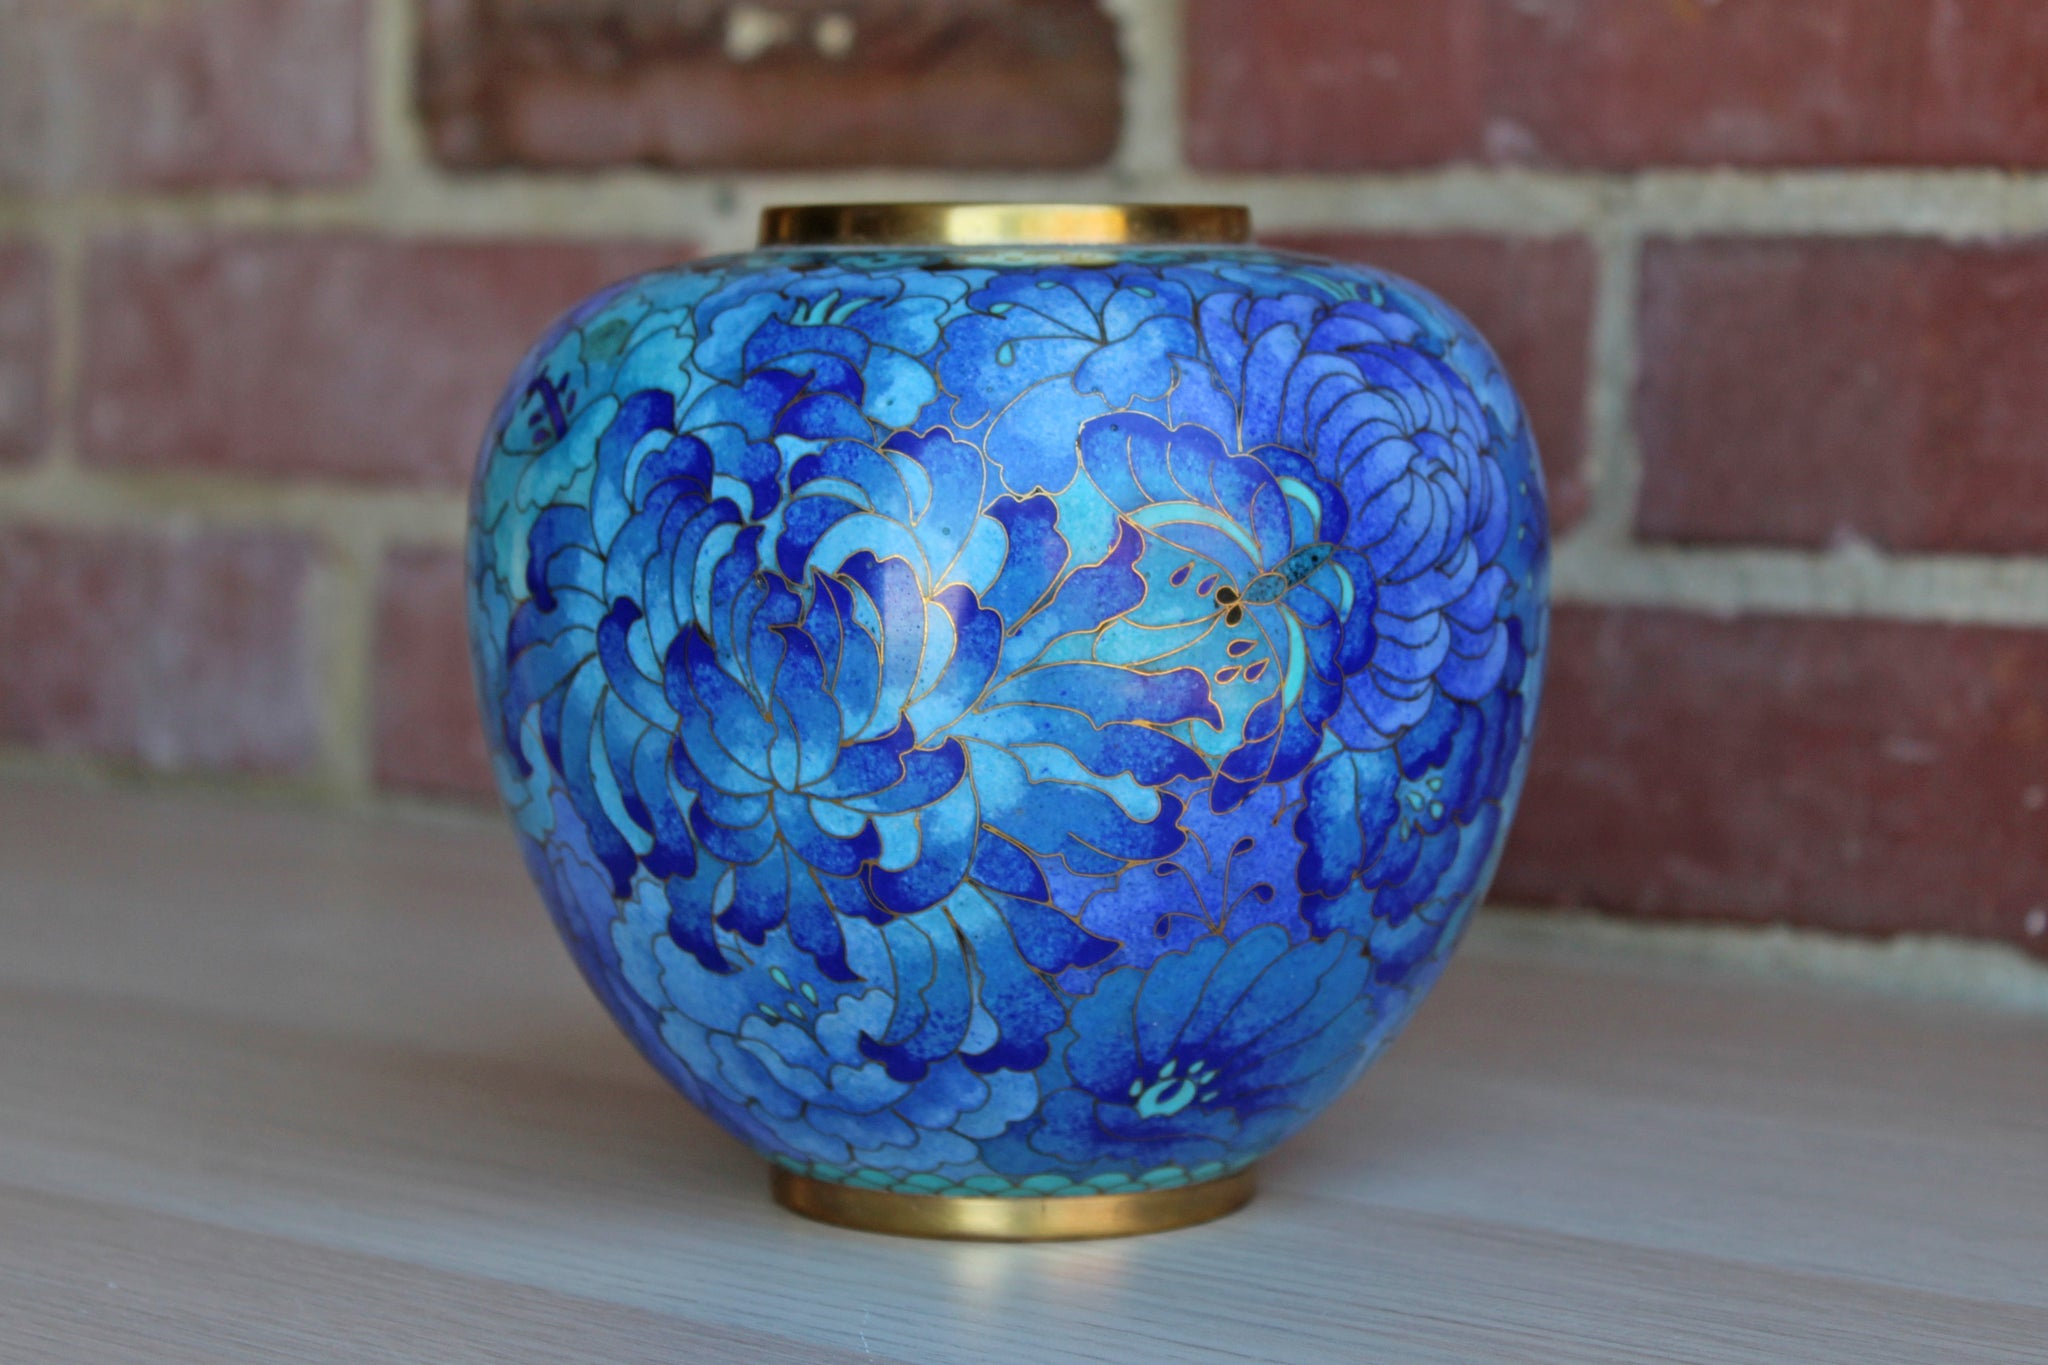 Cloisonné Enamel Vase with Blue Flowers